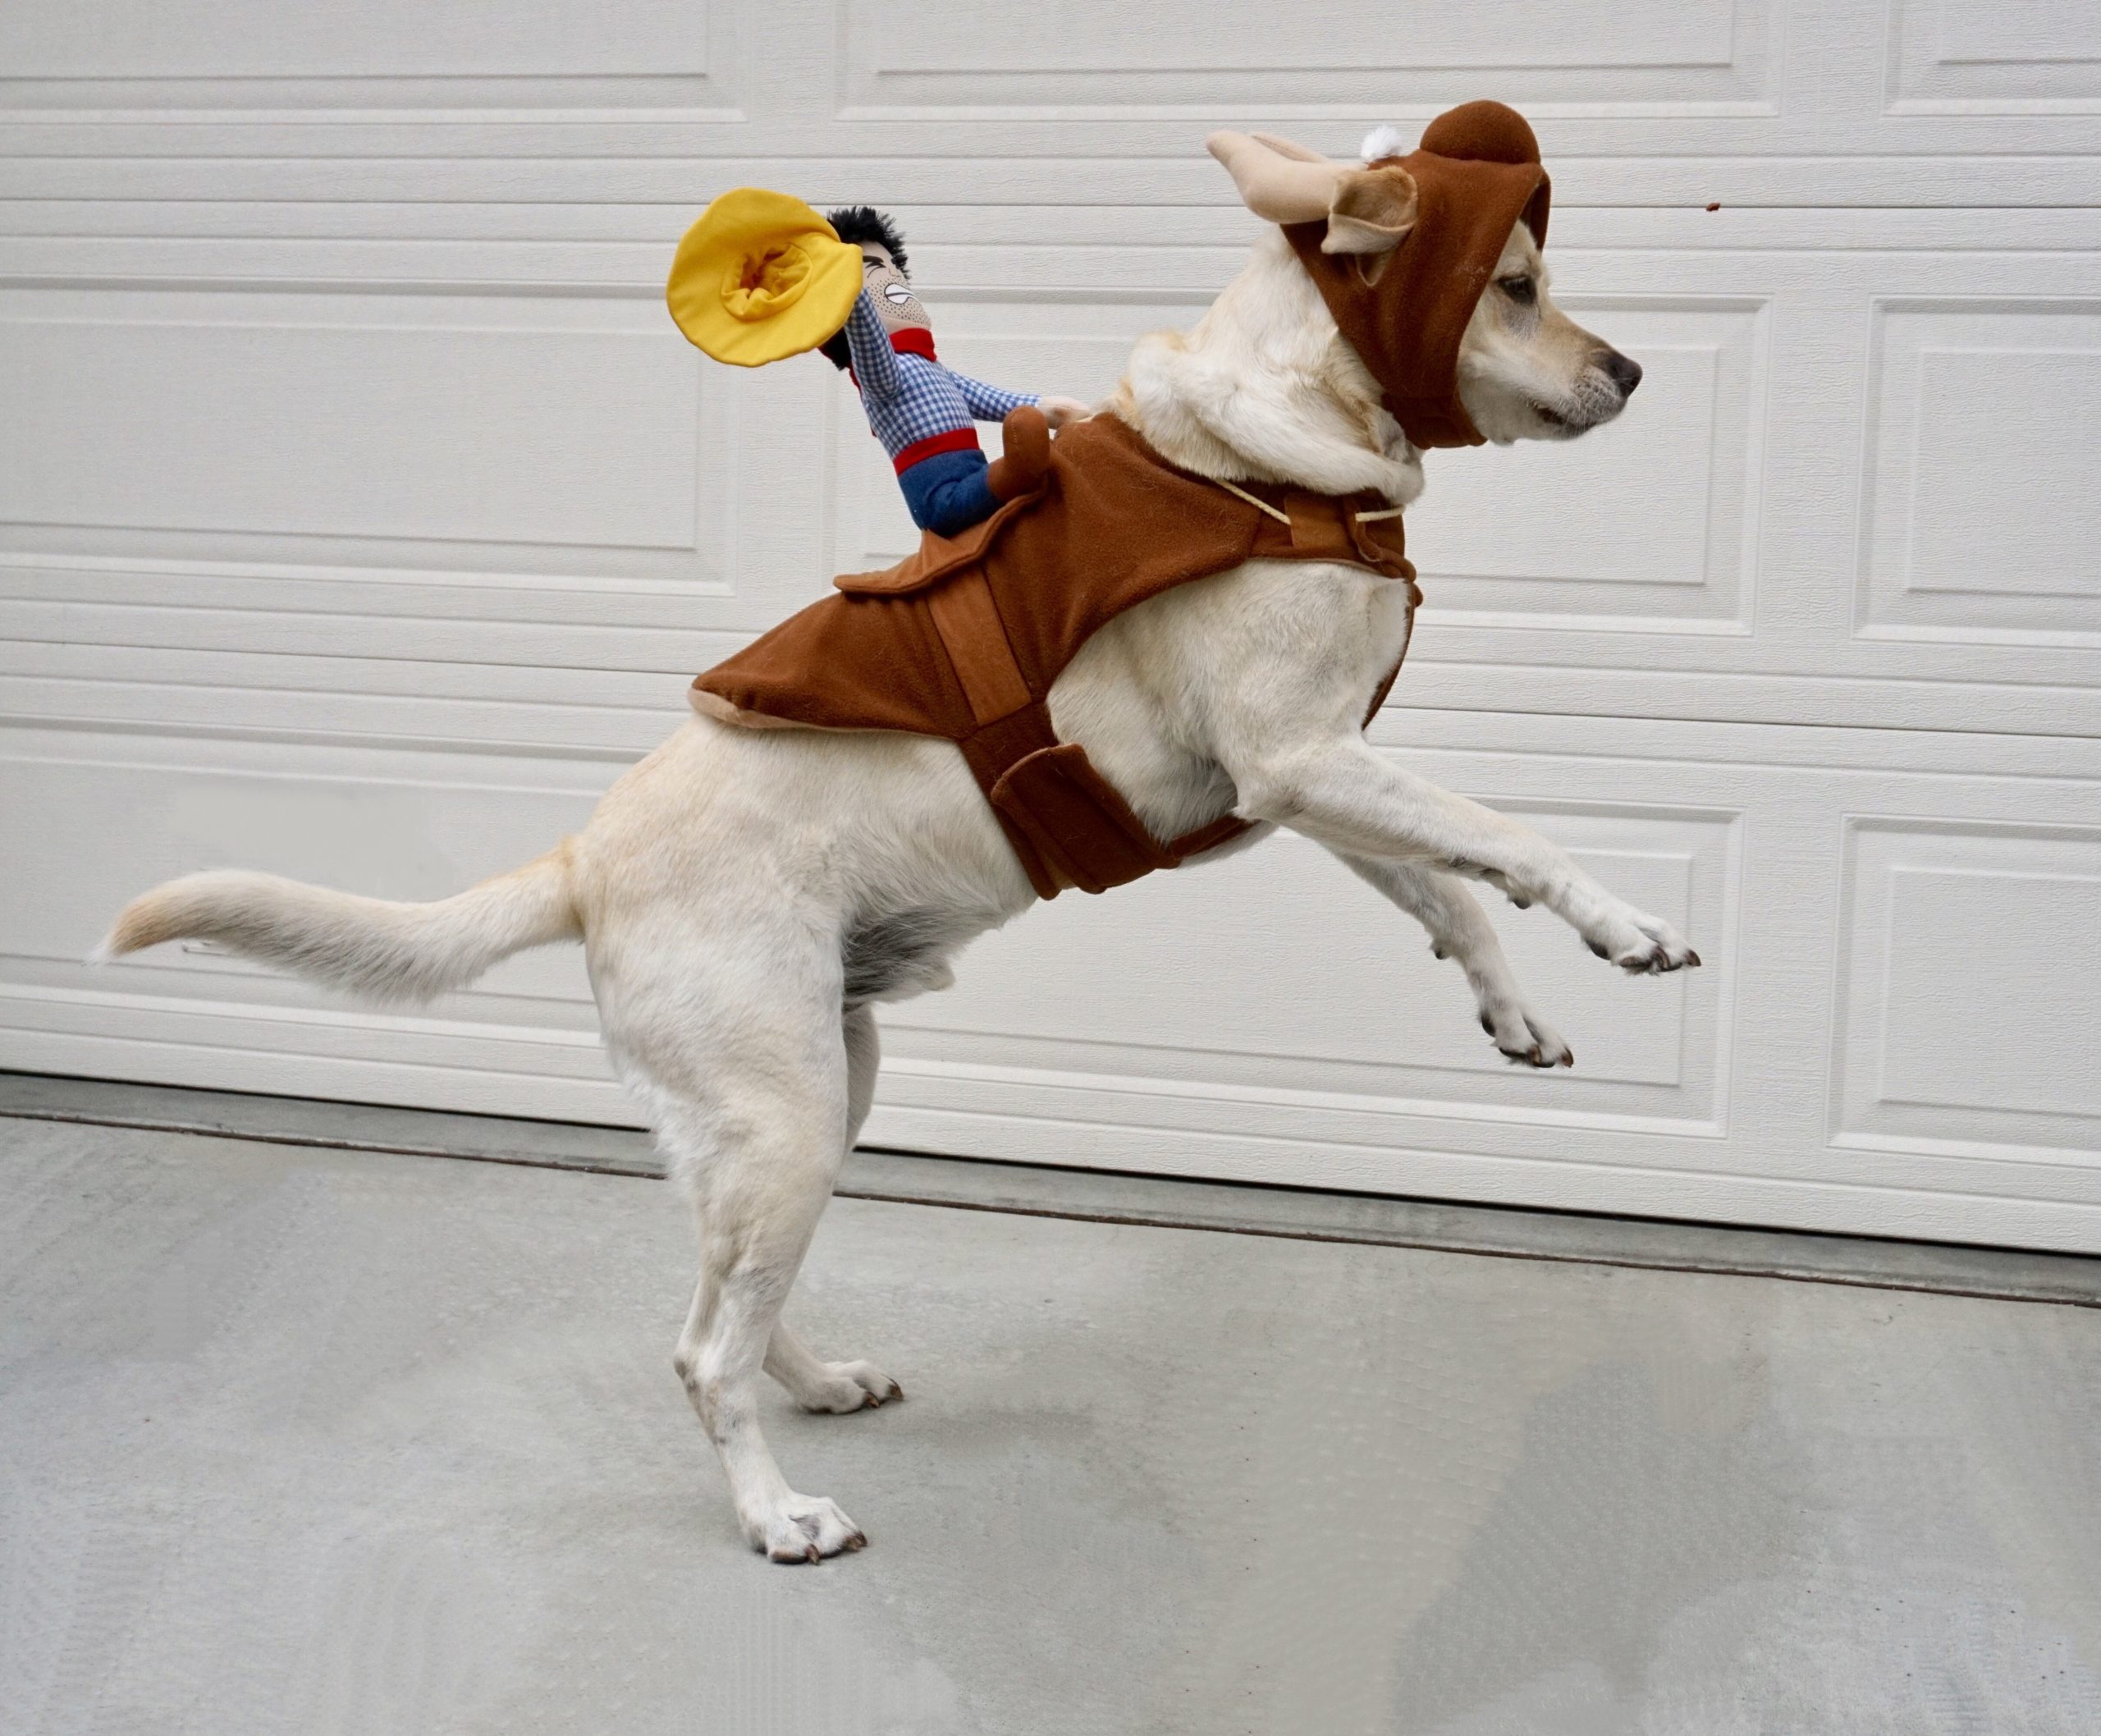 Dog with miniature cowboy on its back